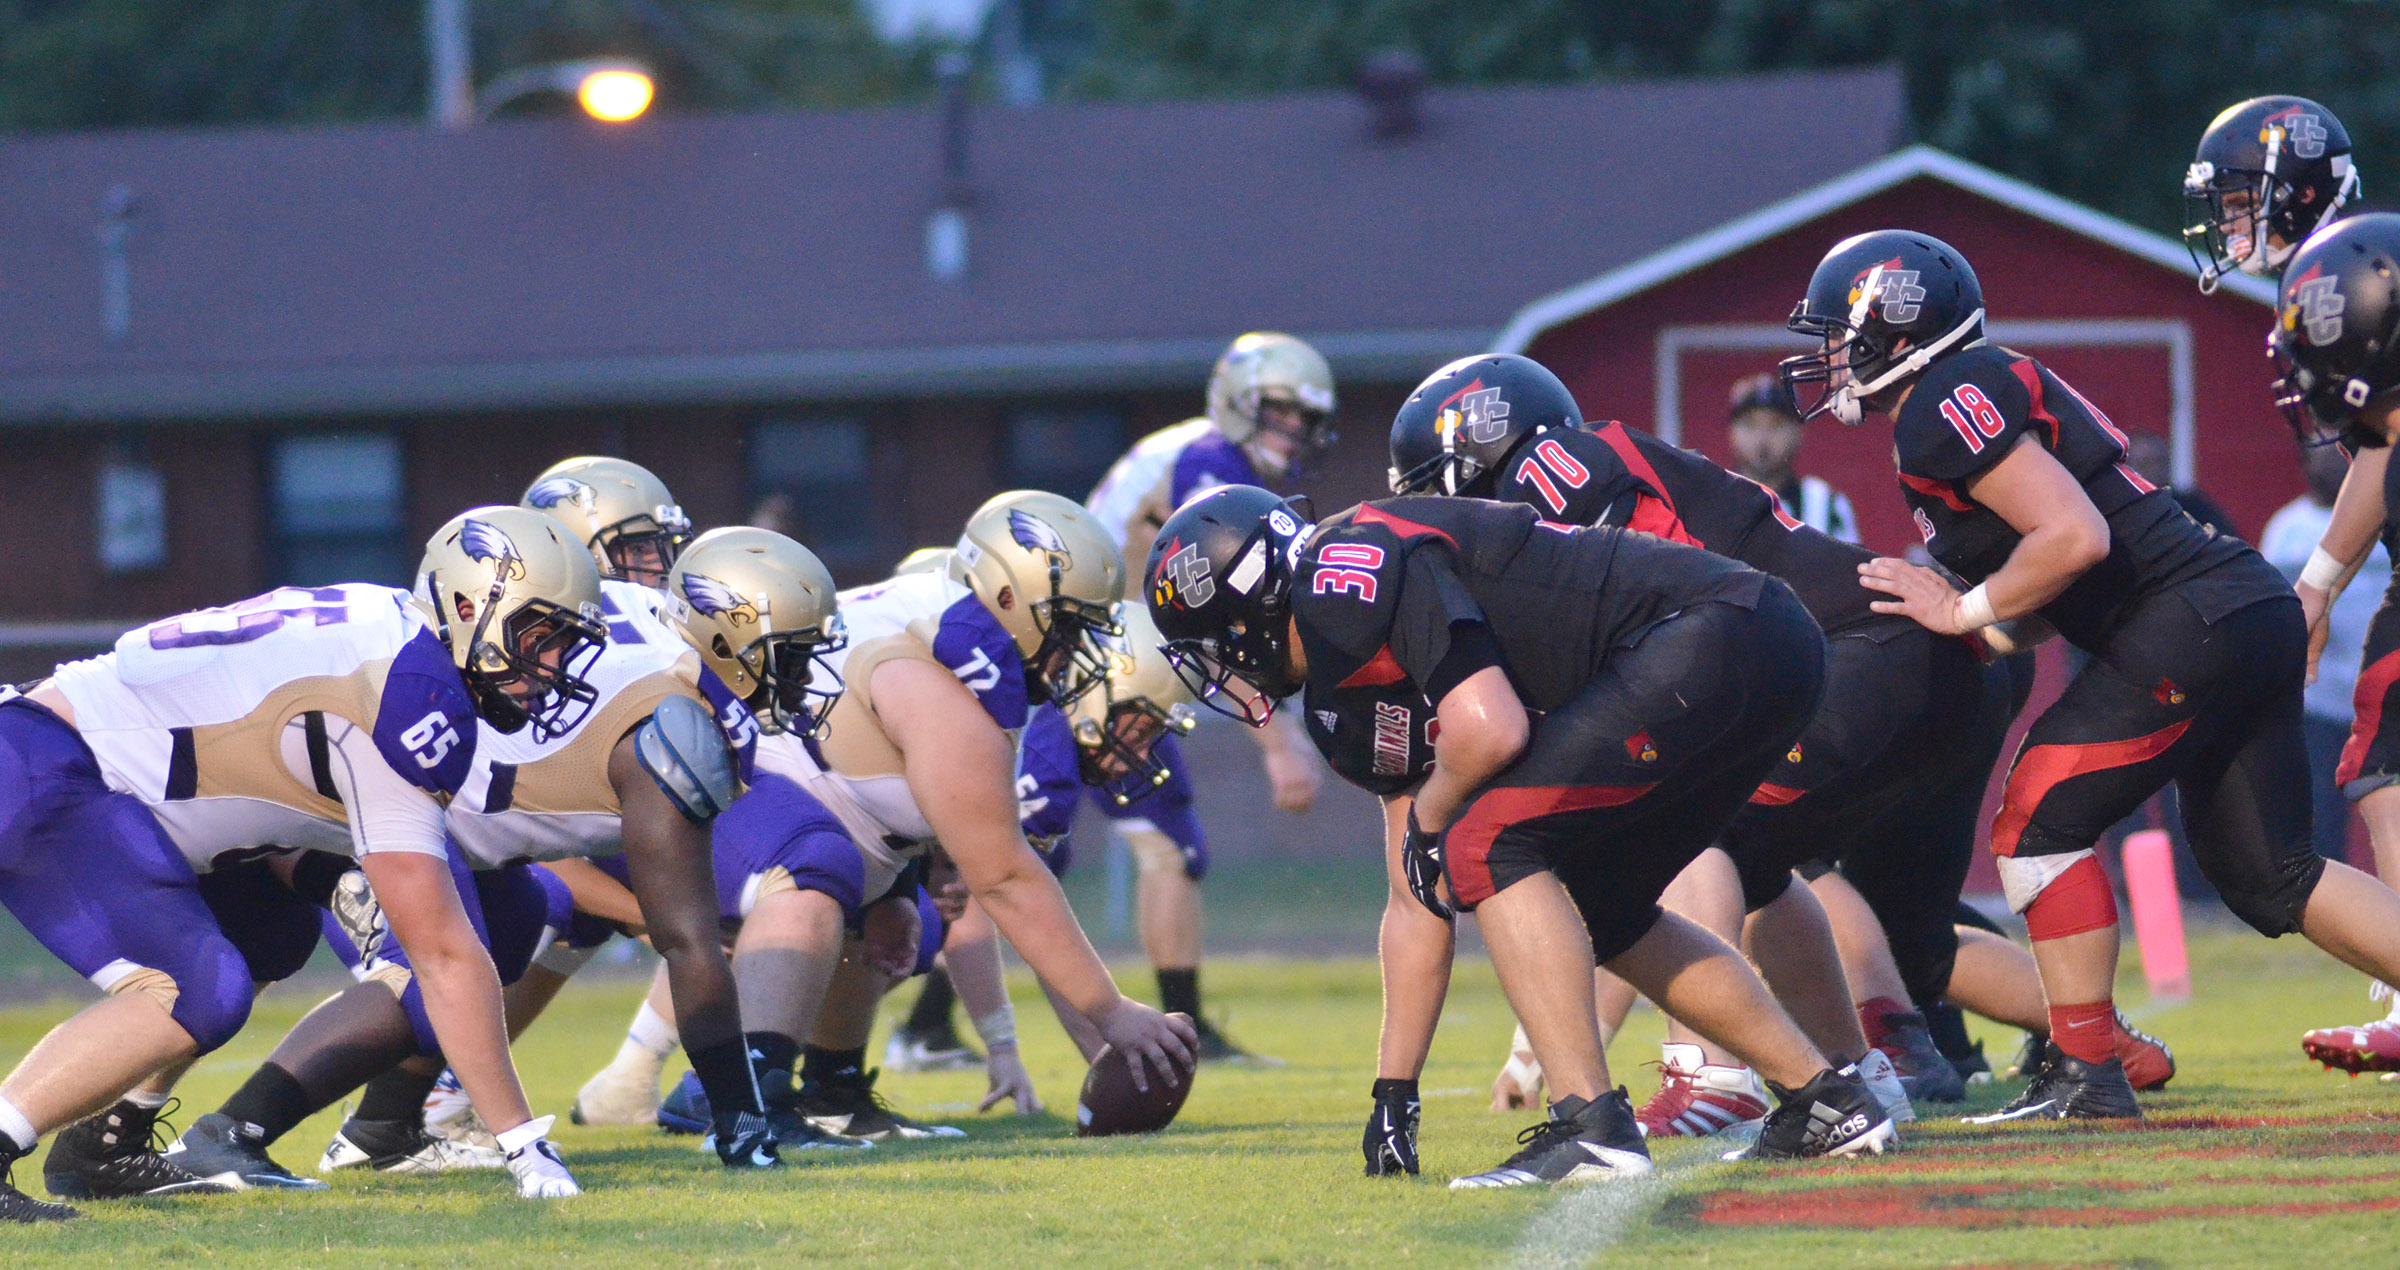 CHS offensive line players get ready for the snap.